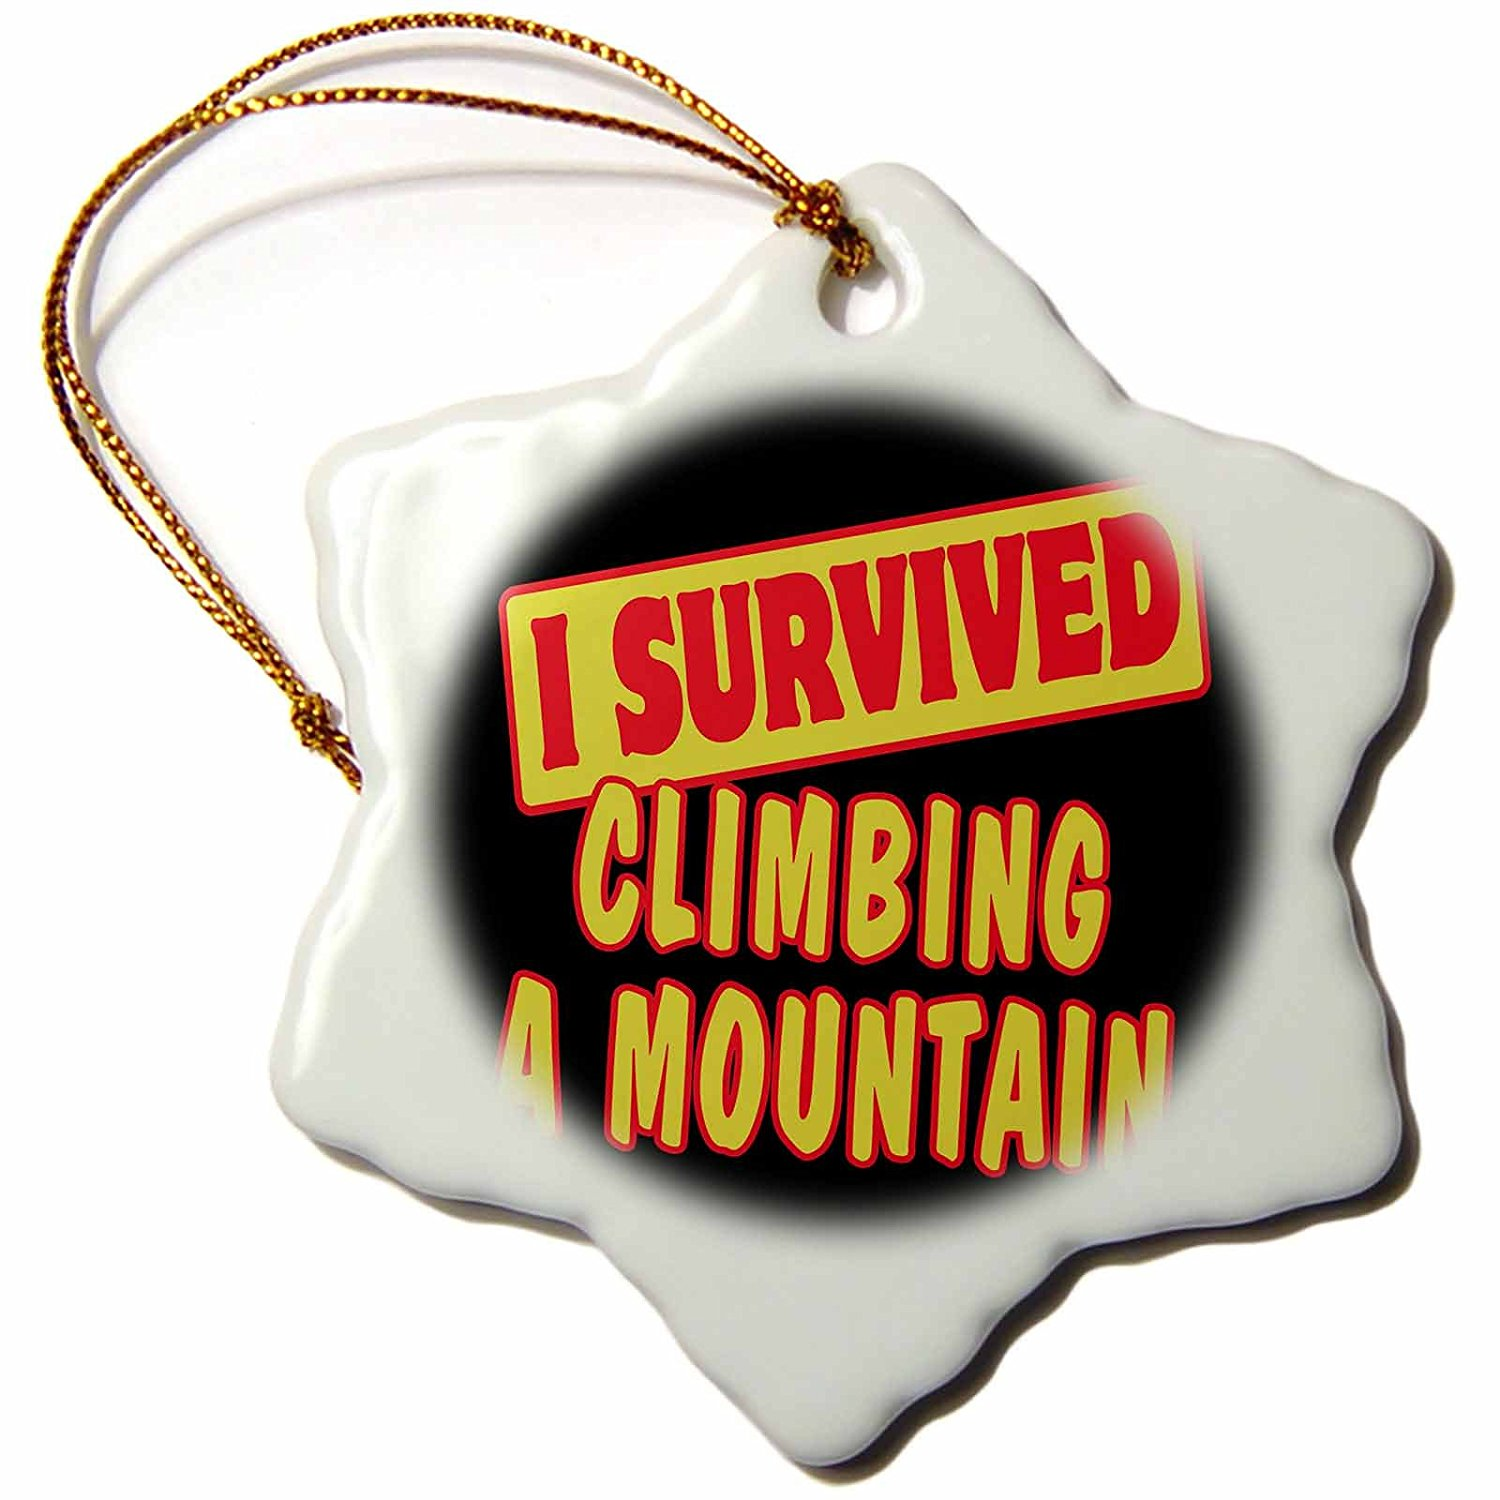 Dooni Designs Survive Sayings - I Survived Climbing A Mountain Survial Pride And Humor Design - 3 inch Snowflake Porcelain Ornament (orn_117842_1)